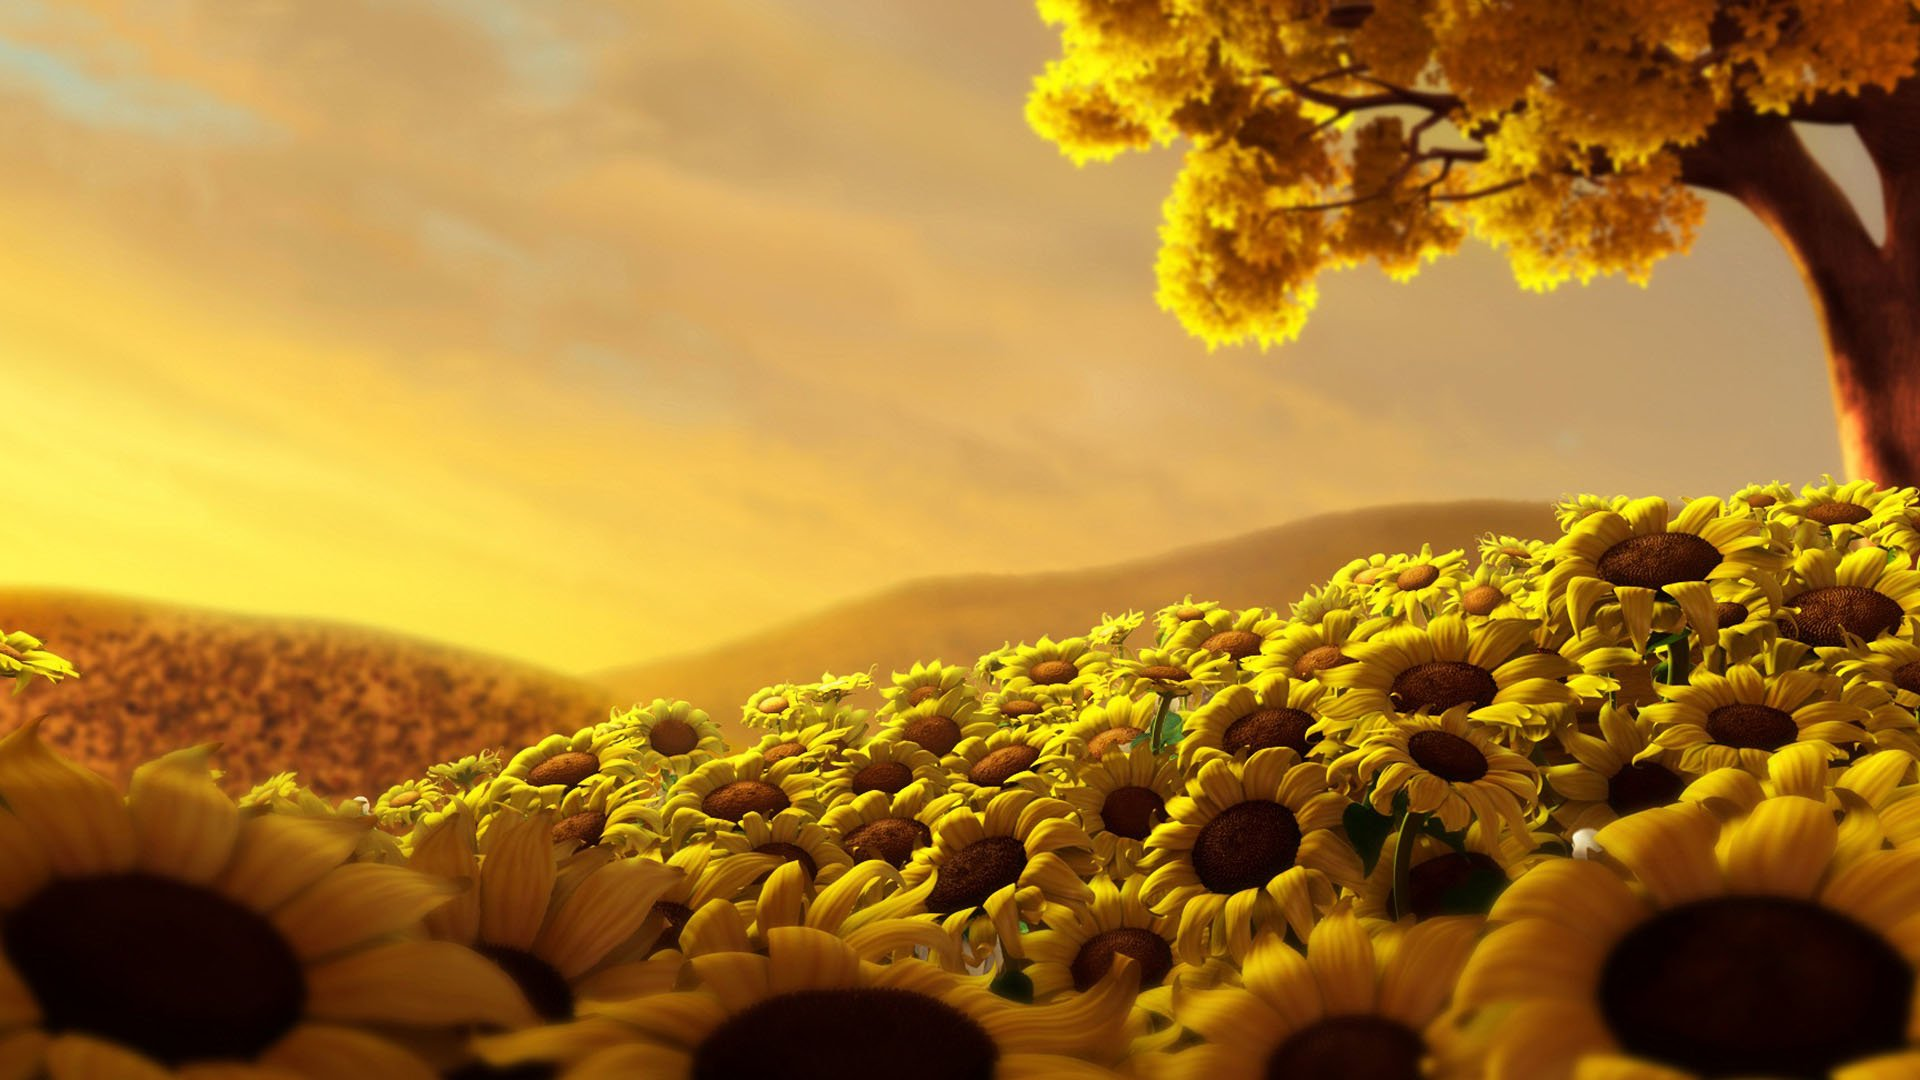 435 sunflower hd wallpapers | background images - wallpaper abyss